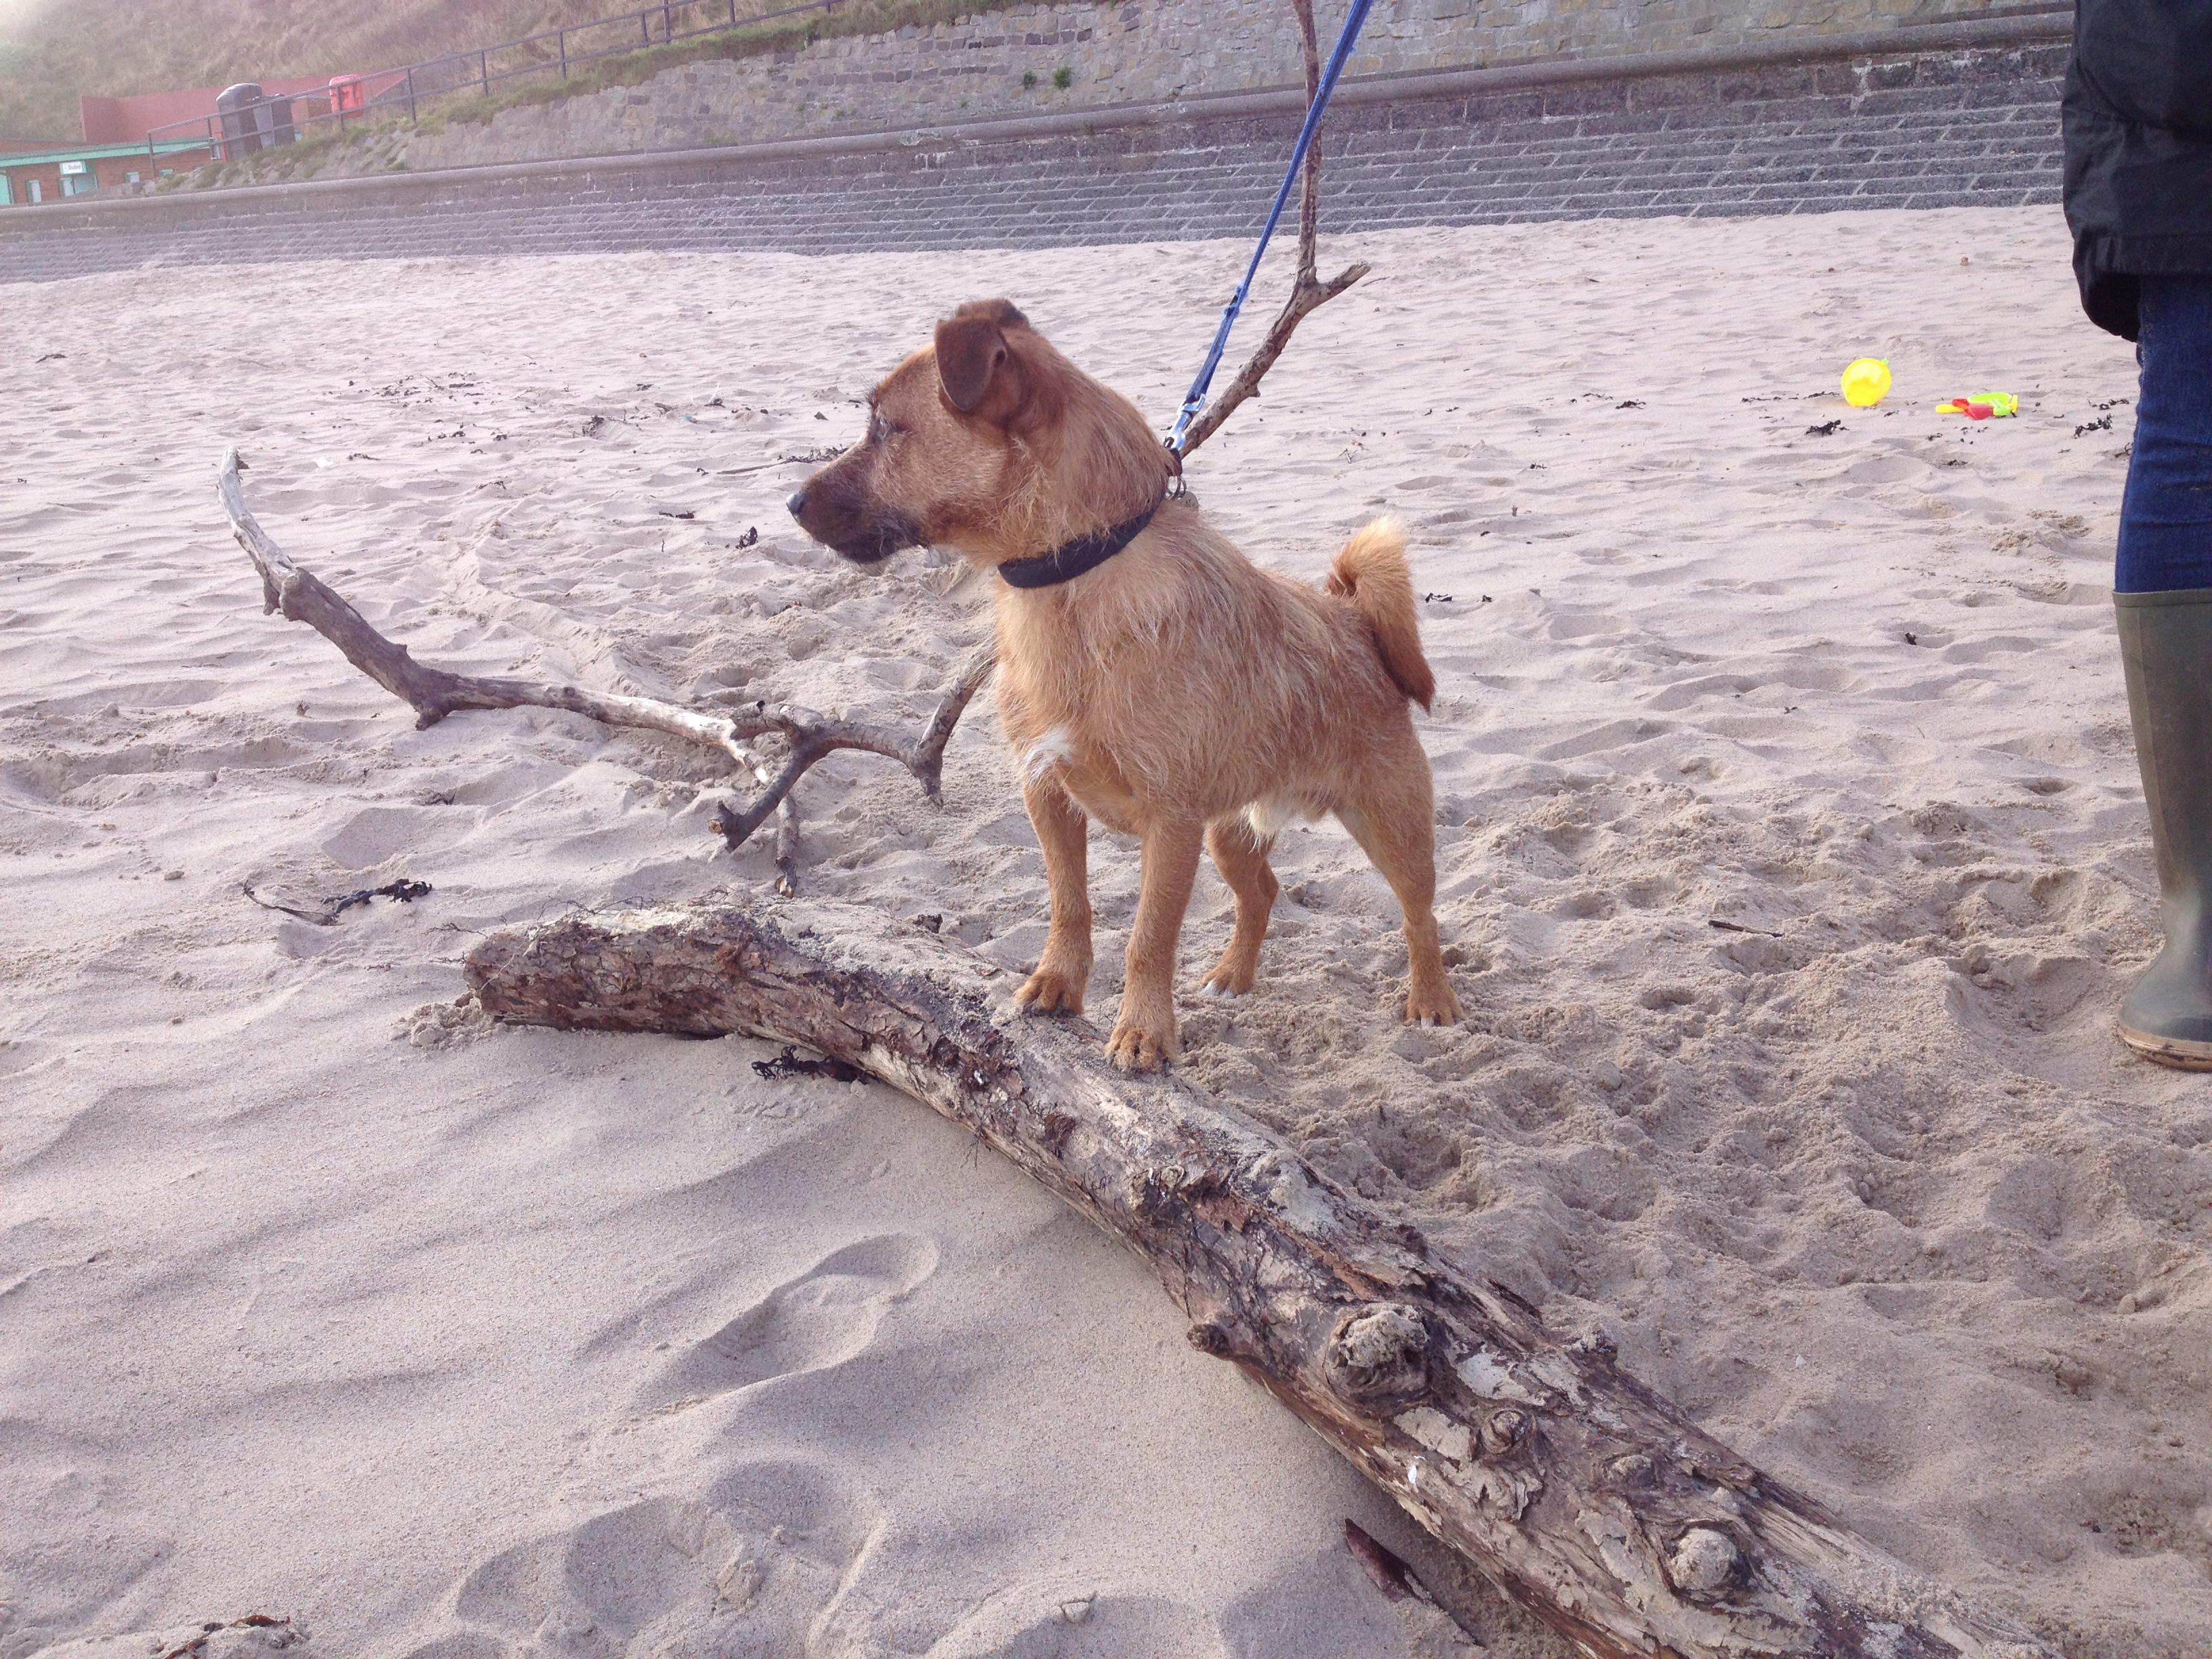 Toby - Enjoying the latest dog day out at the beach with hot dog hols